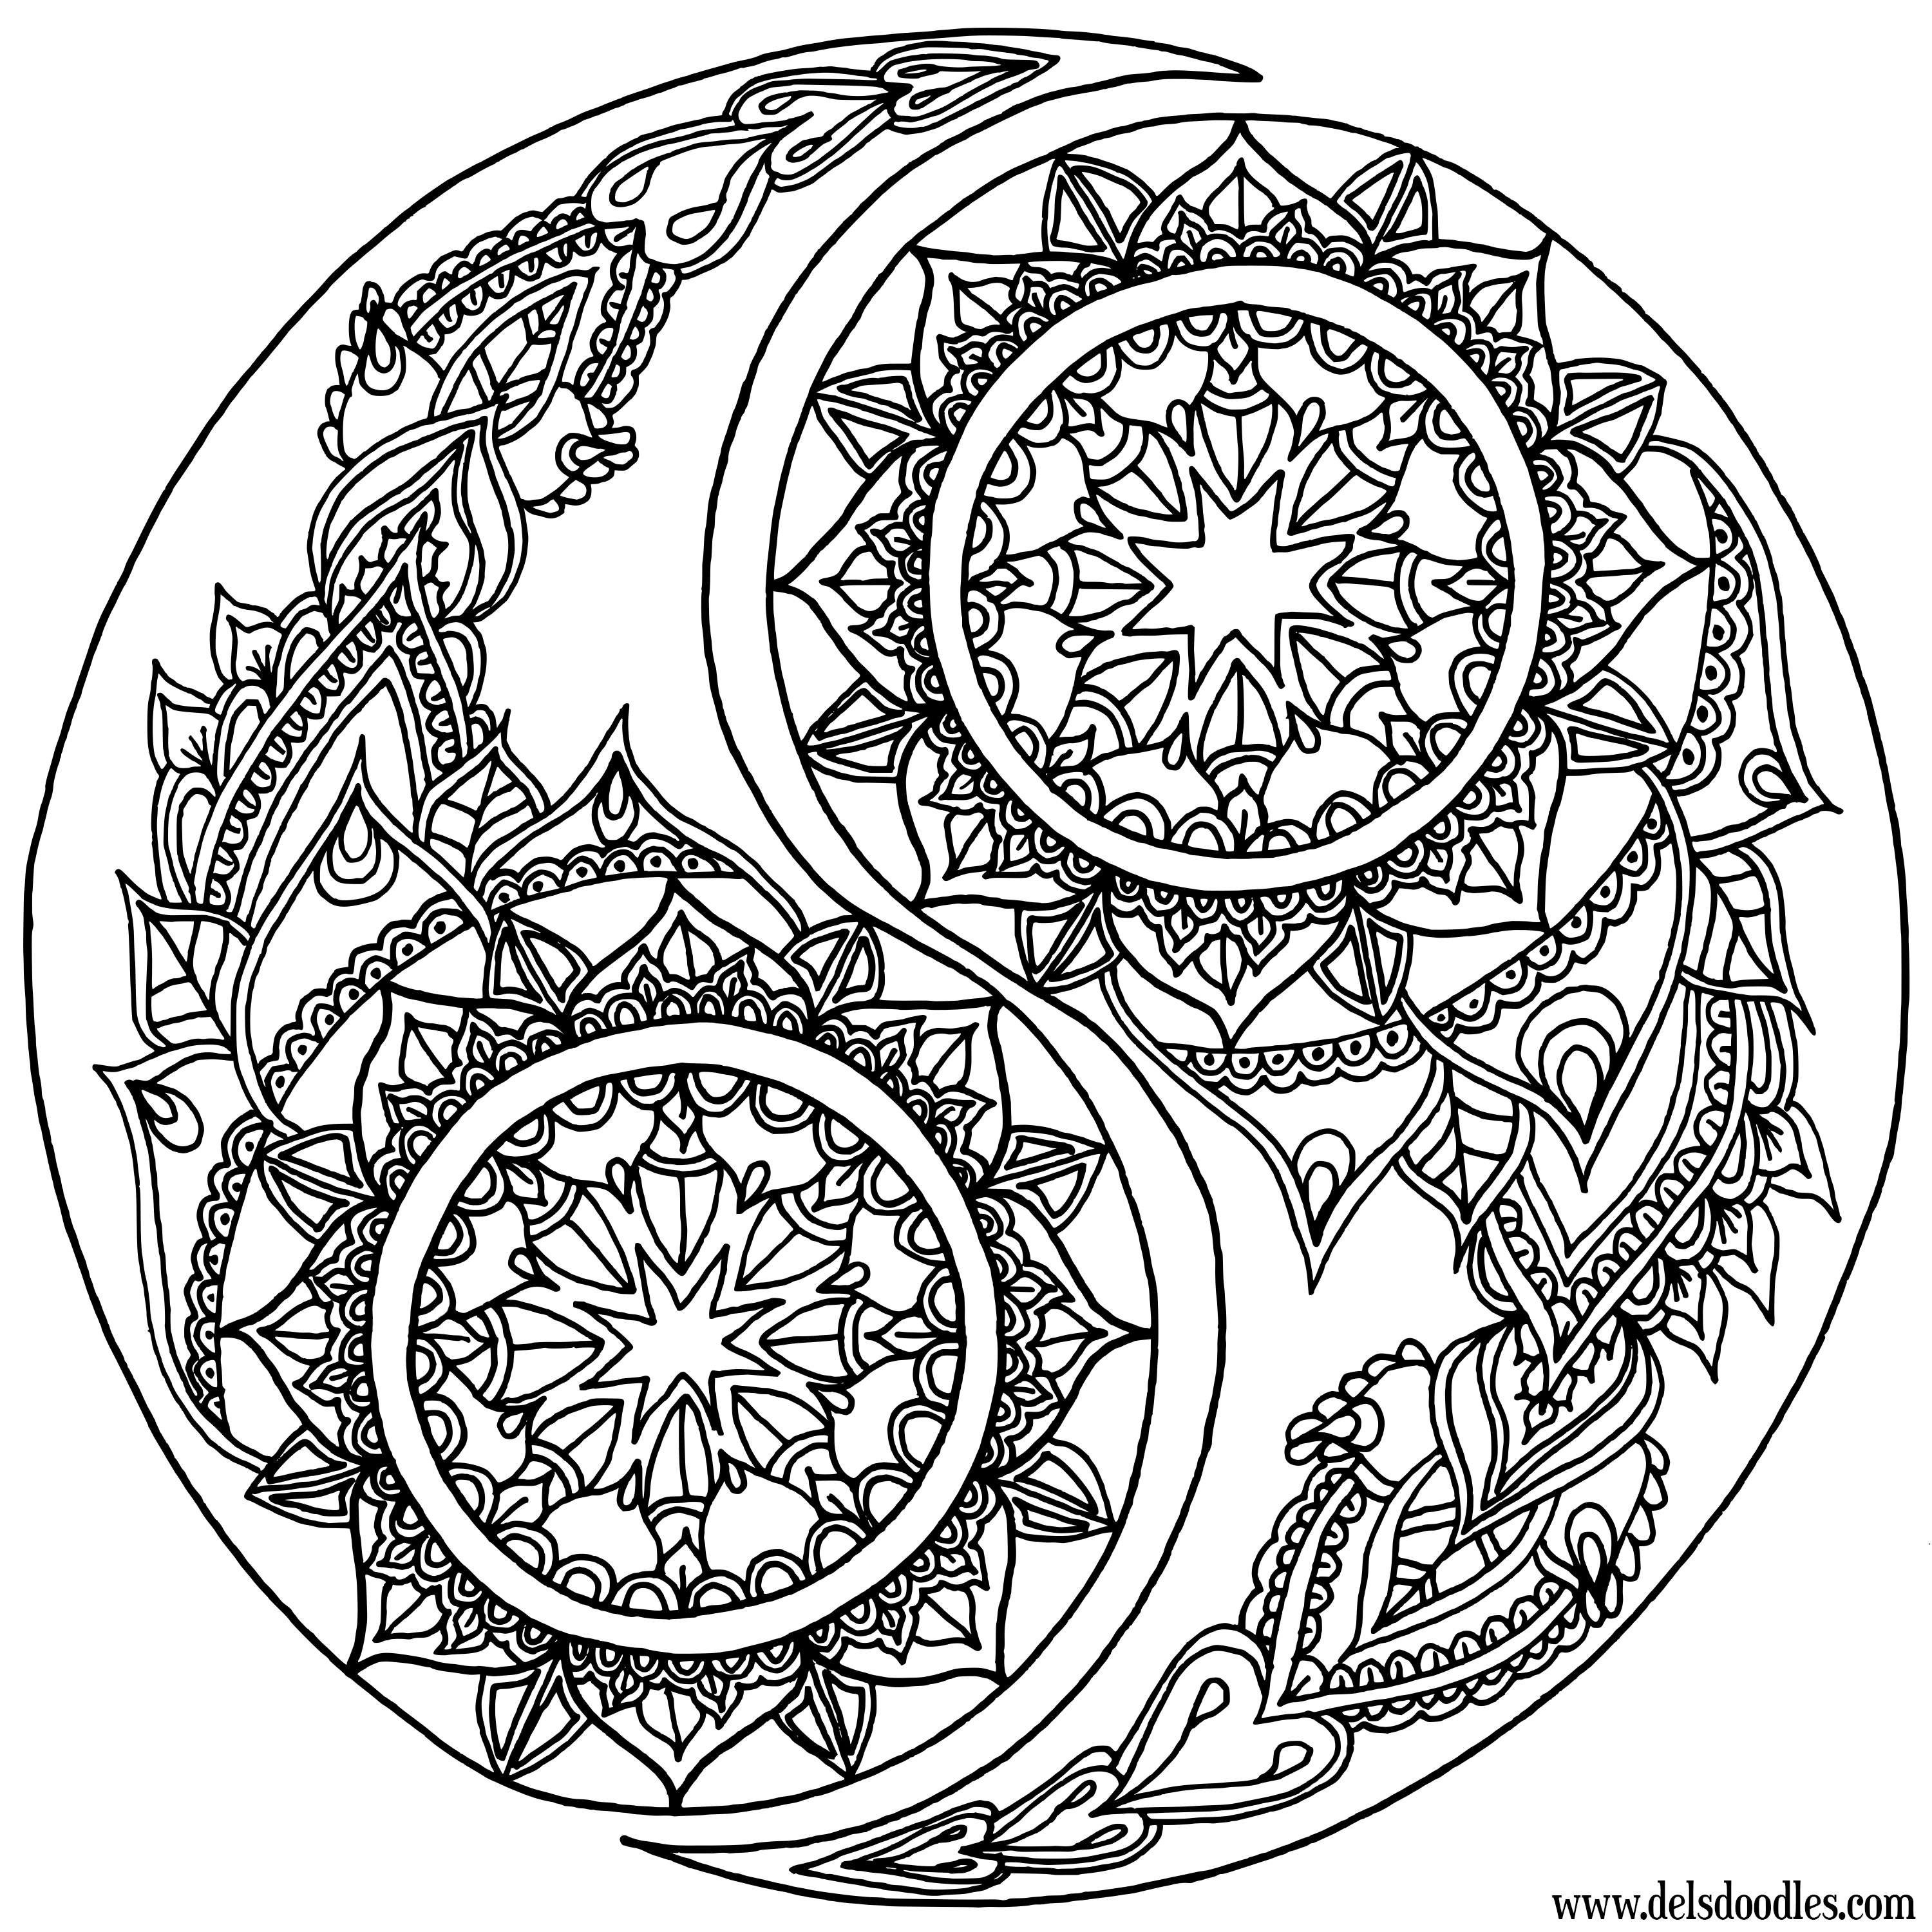 3000x3000 Yin Yang Coloring Pages Printable To Cure Draw Pict Printable